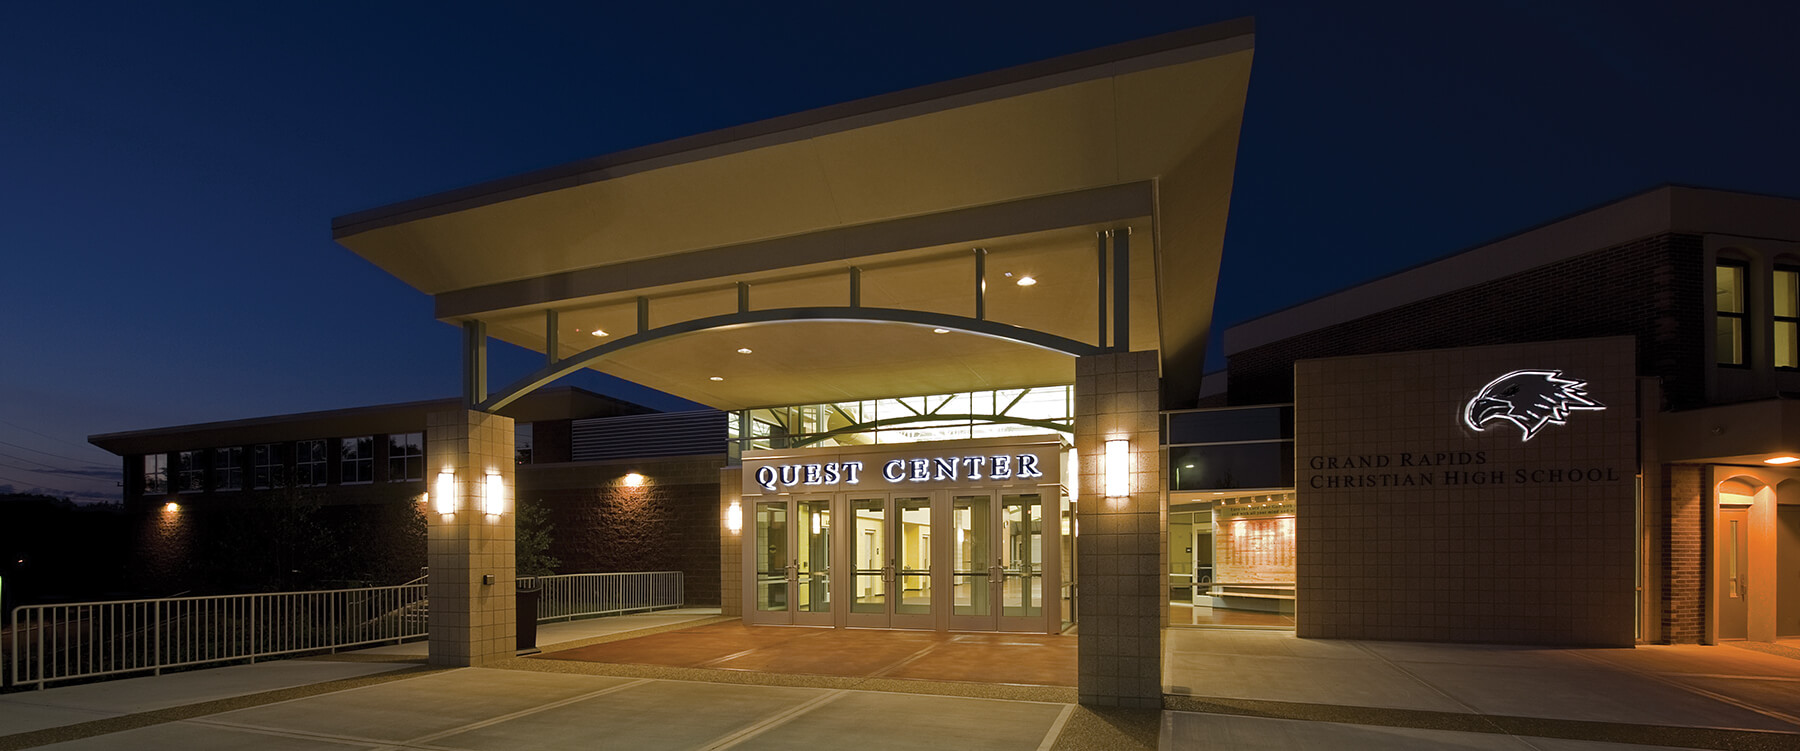 GRCHS Quest Center at dusk